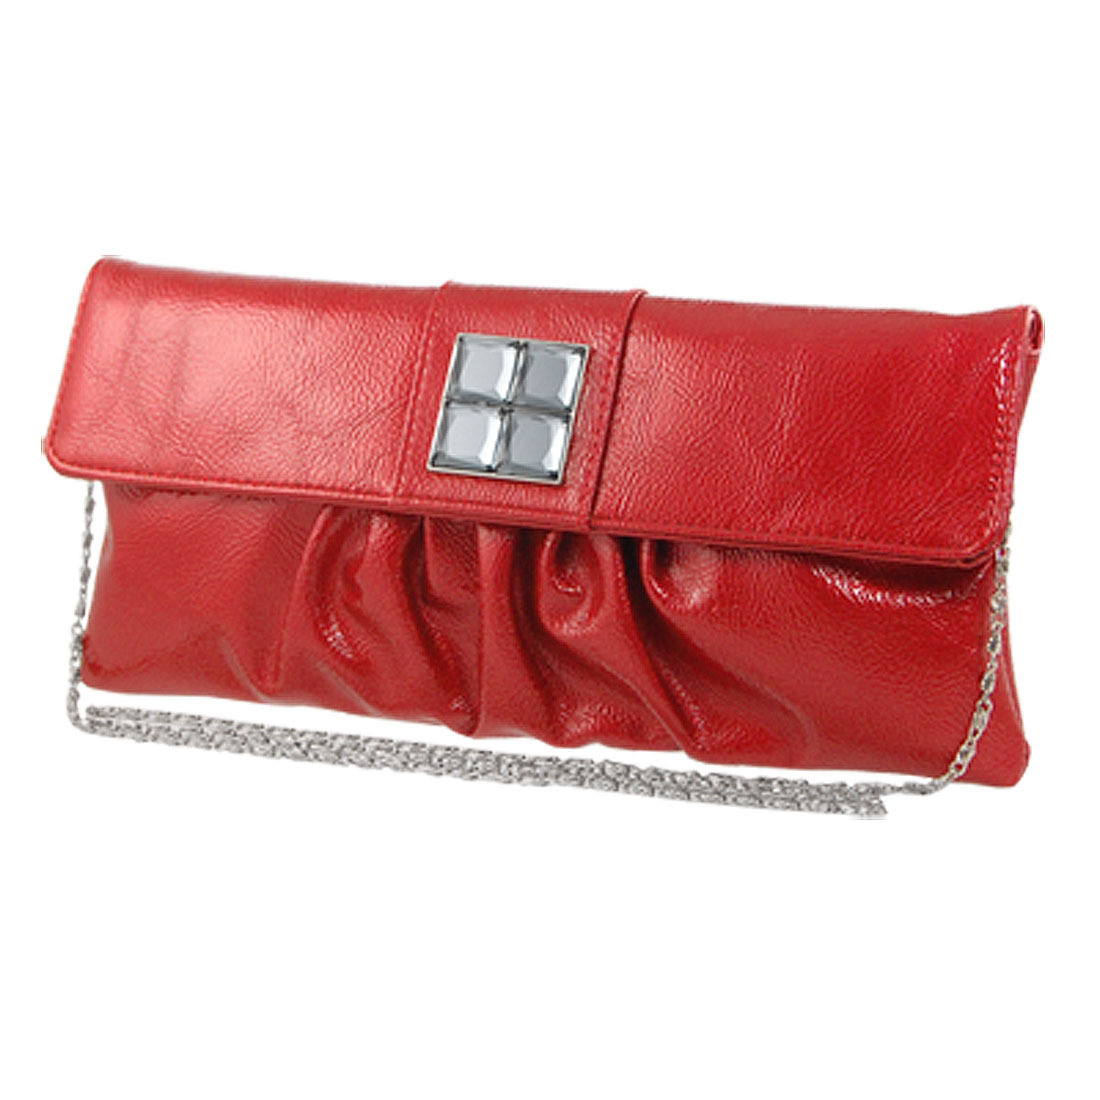 Plastic Crystal Accent Red Faux Leather Evening Handbag for Women